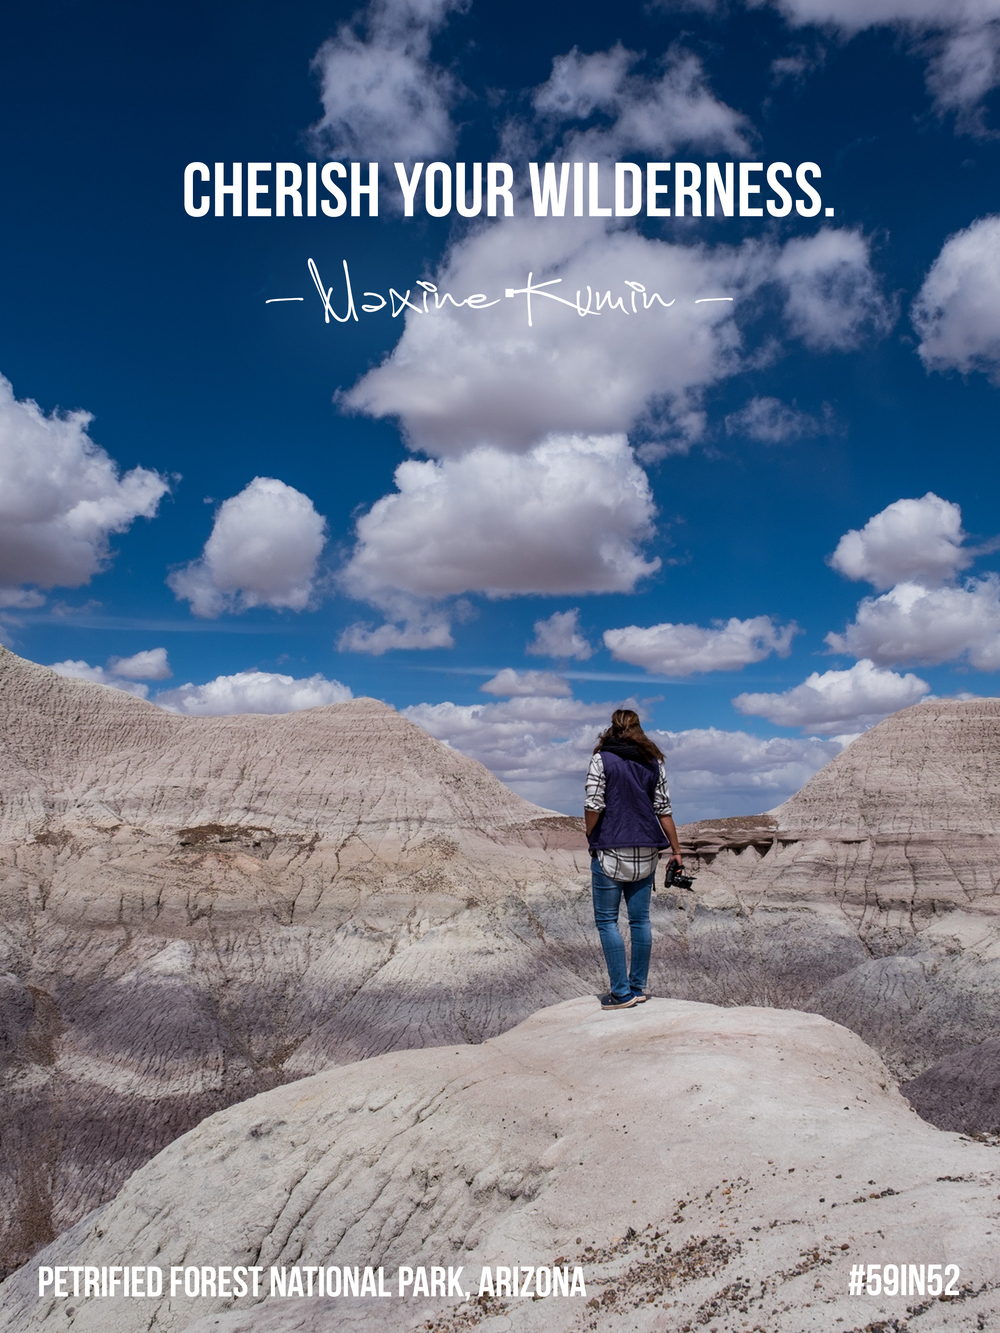 """Cherish your wilderness."" - Maxine Kumin"